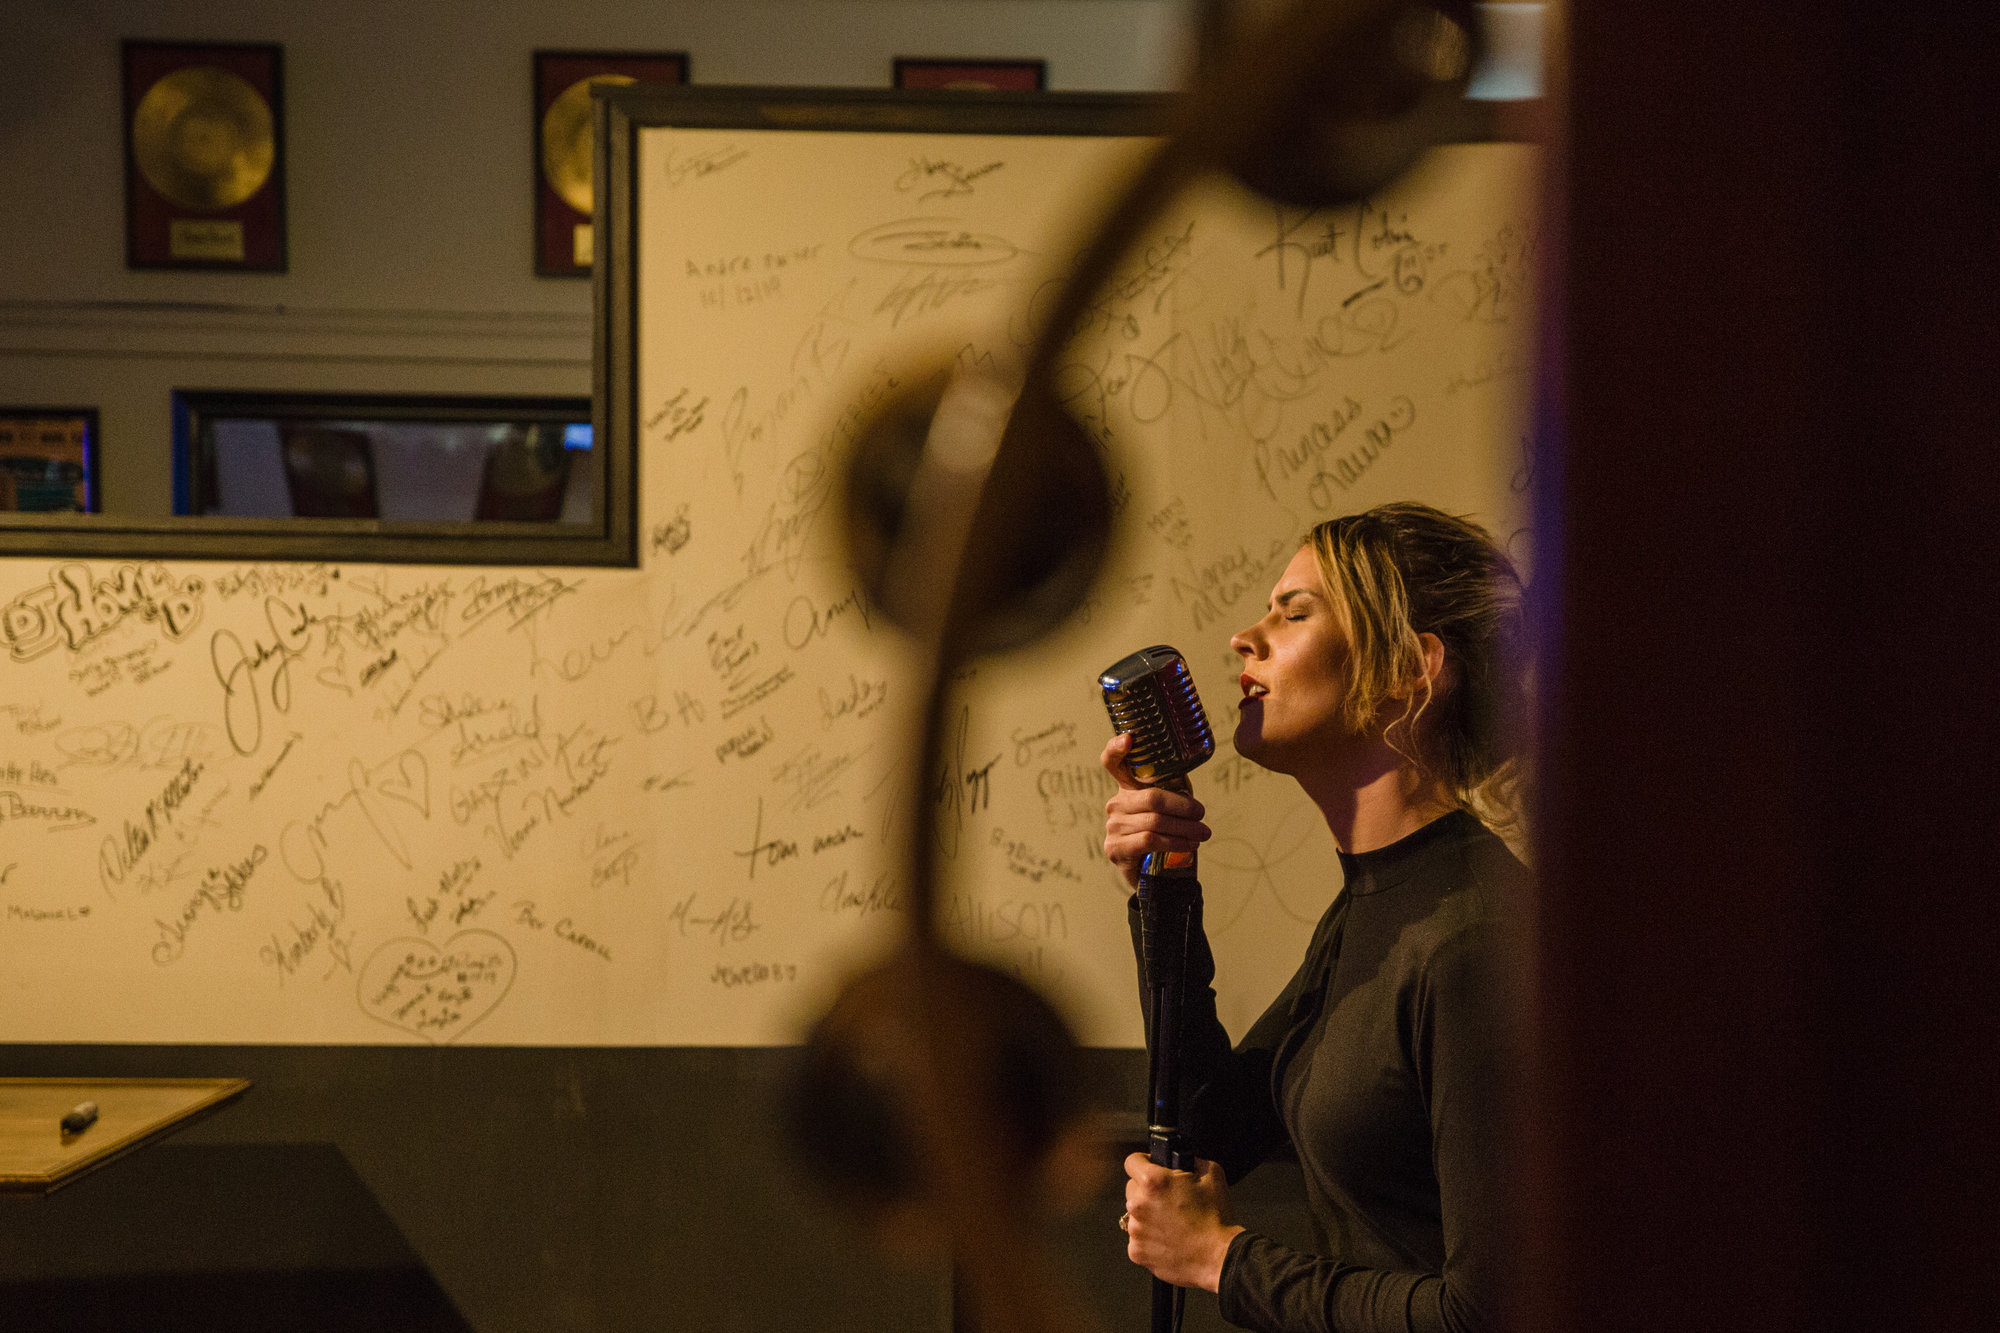 Kimberly Henderson sings at J. O'Grady's After Hours karaoke bar on Thursday night.